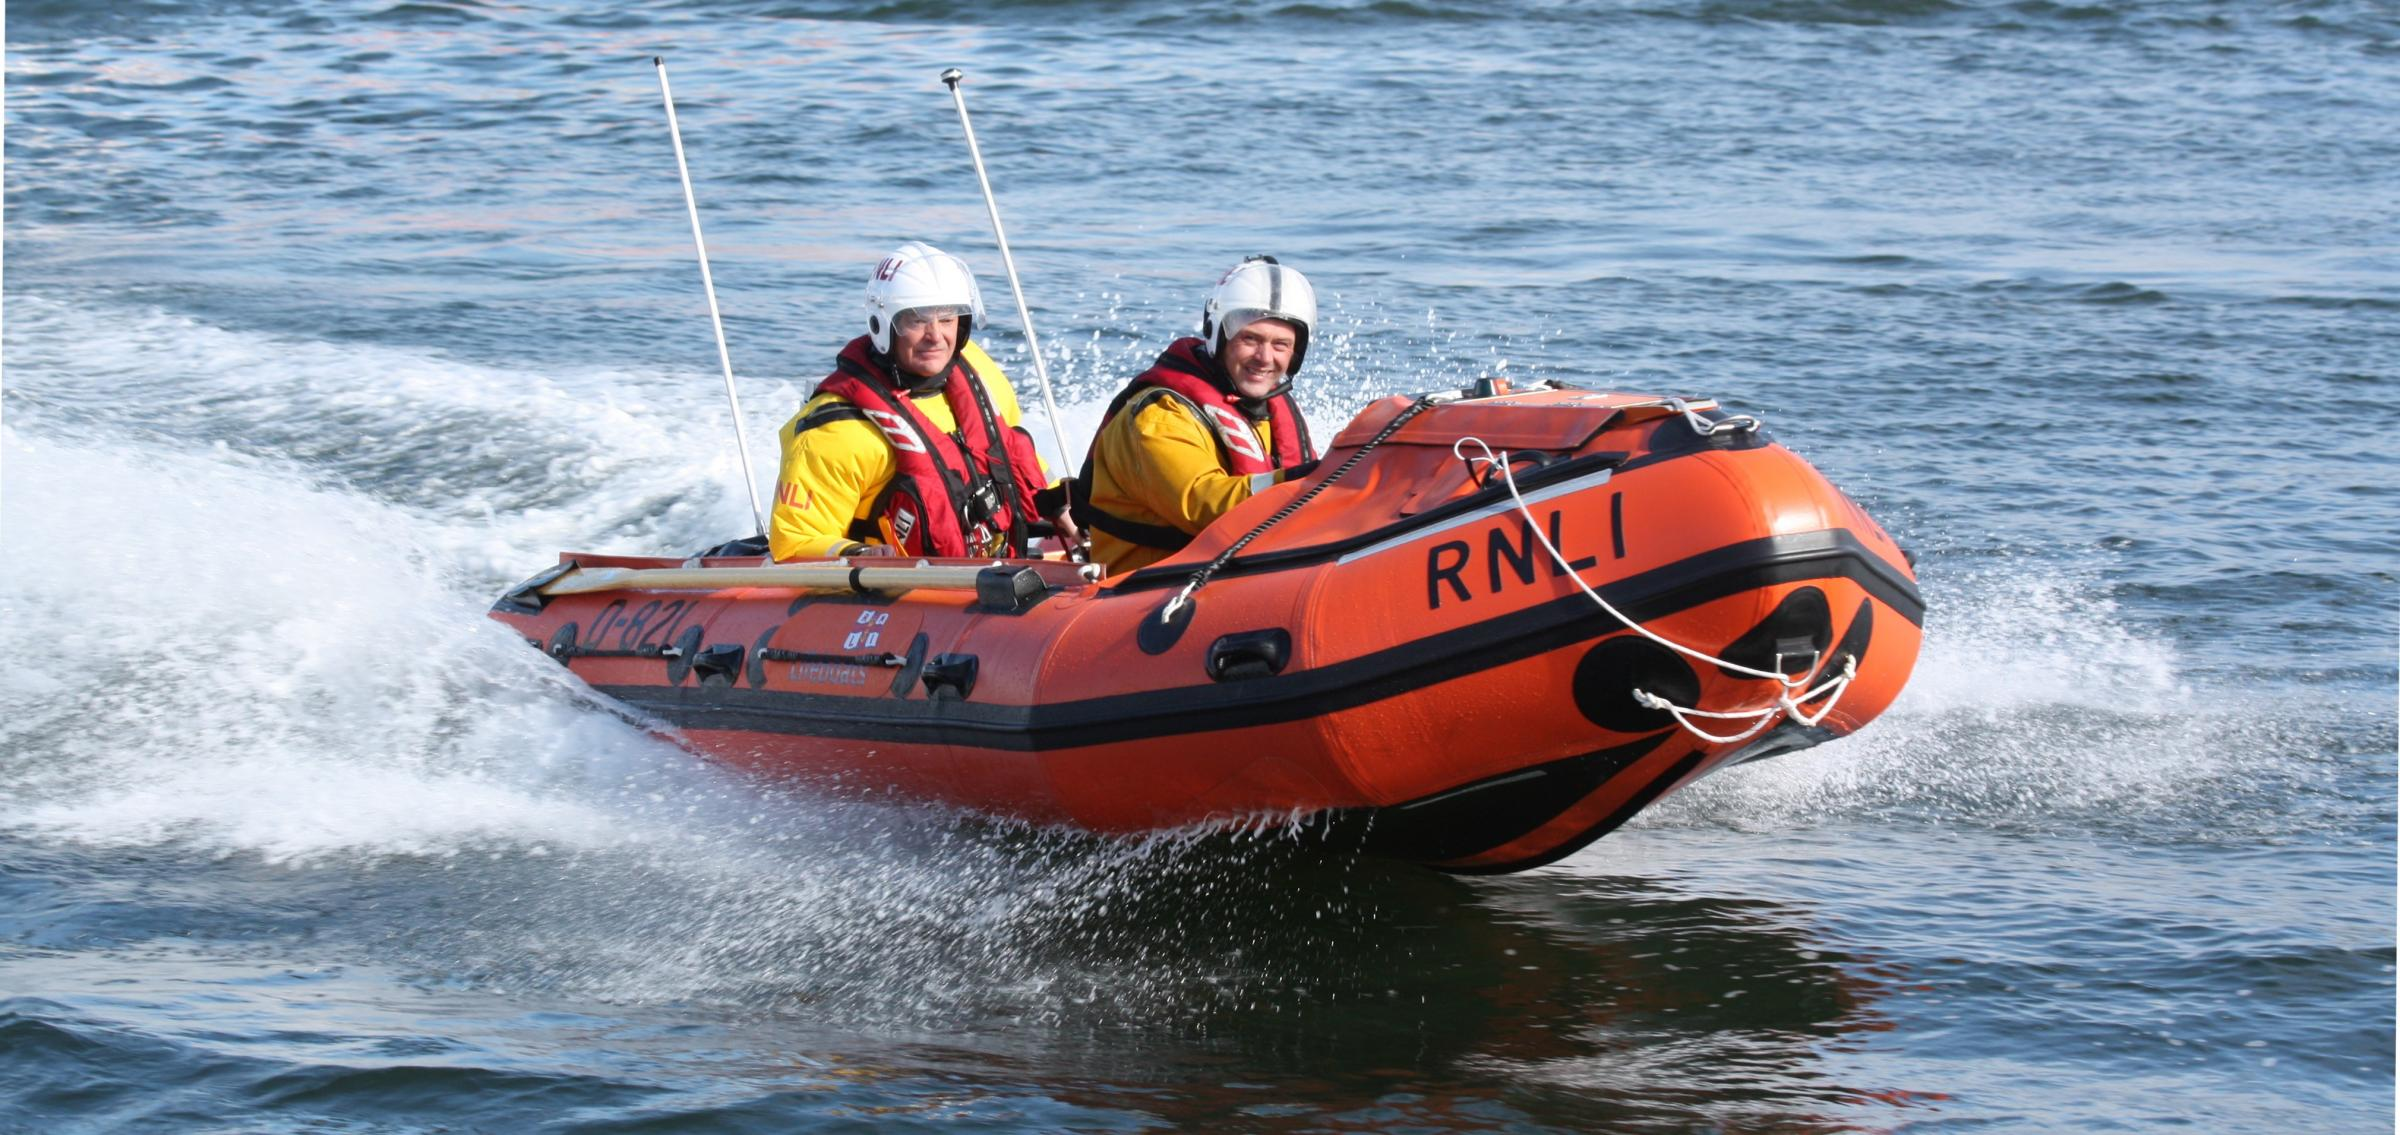 Farewell from Troon RNLI to their lifeboat